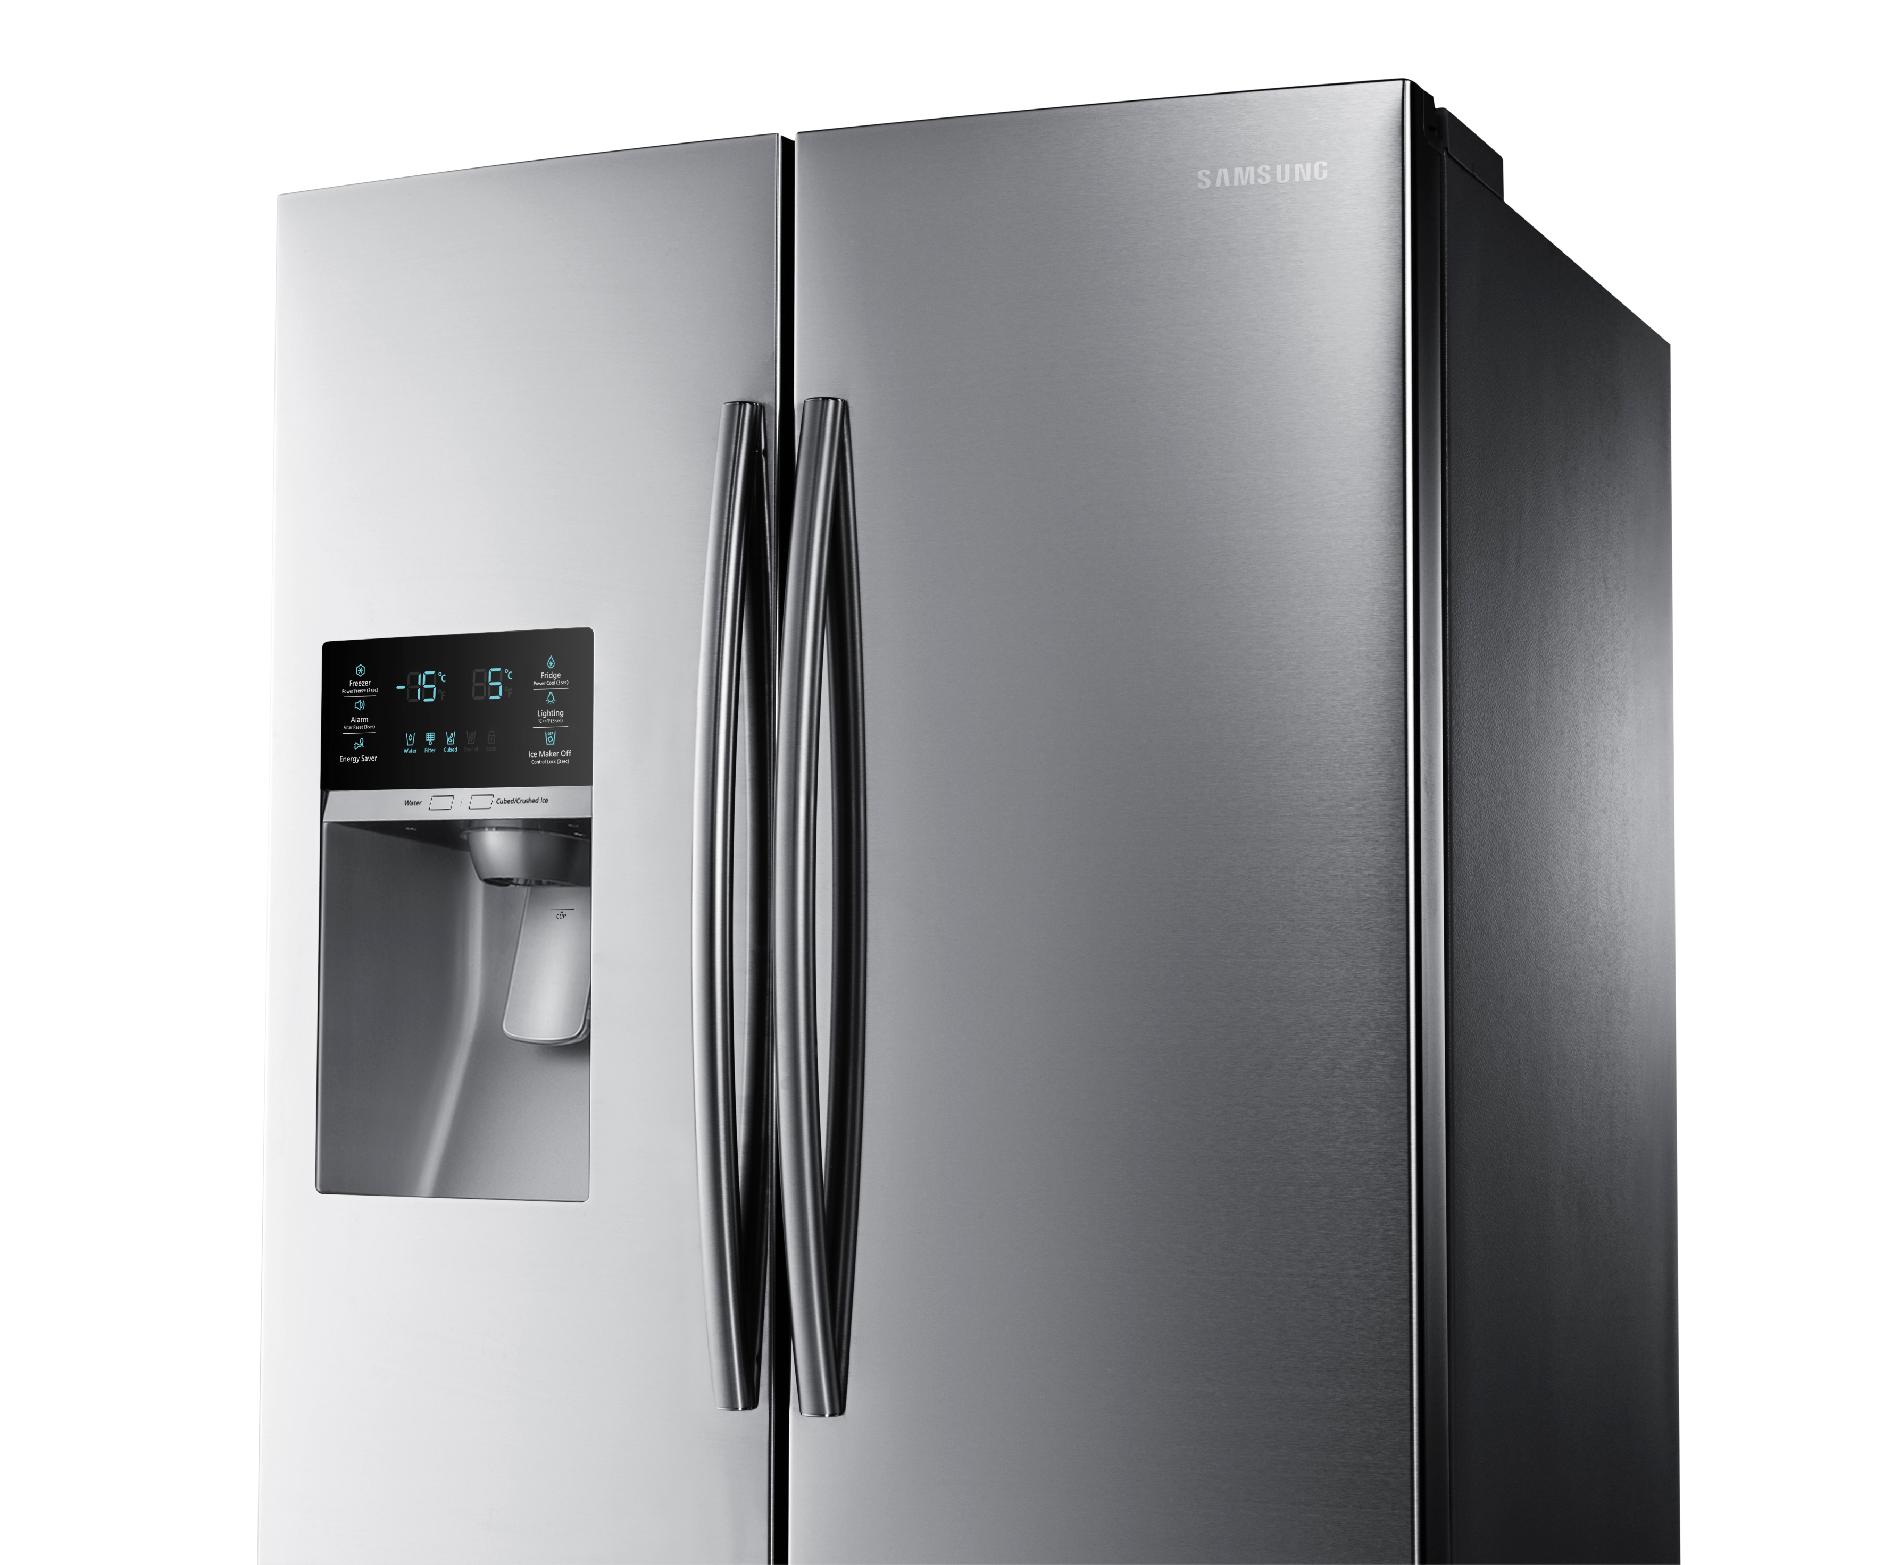 Samsung RF28HFEDBSR 28 cu. ft. French Door Refrigerator-Stainless Steel